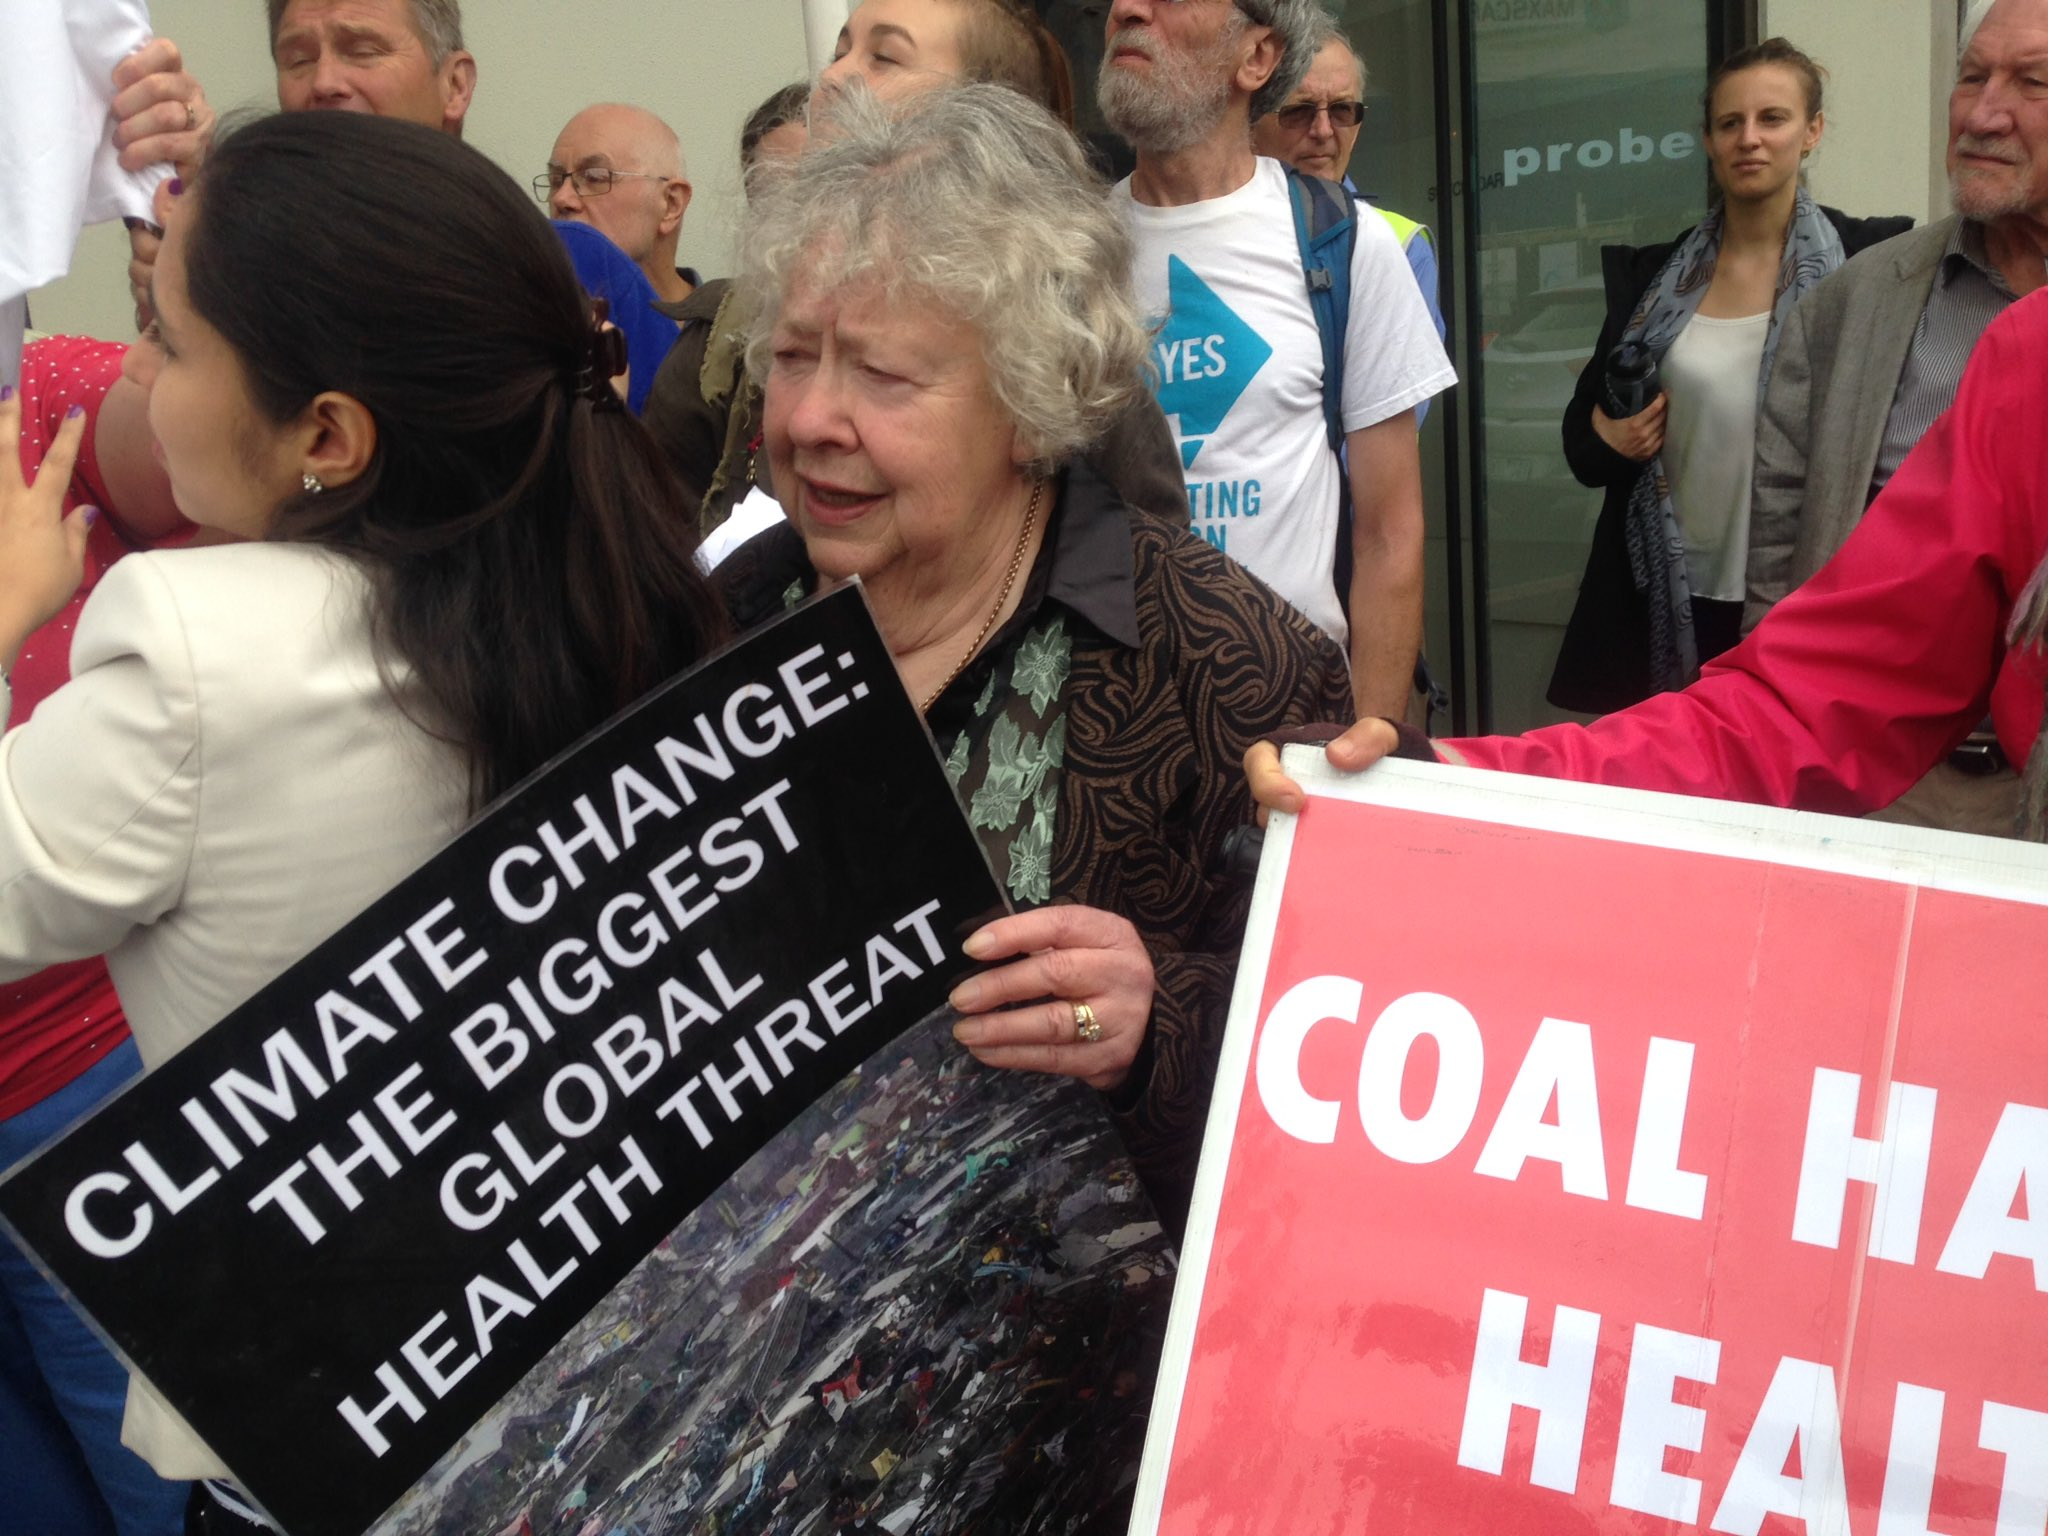 Why smash our progressive #VRET @SouthwickMP Major coalition of business groups NGOs community calls for end of partisan games on #energy https://t.co/awnKYeEDpK